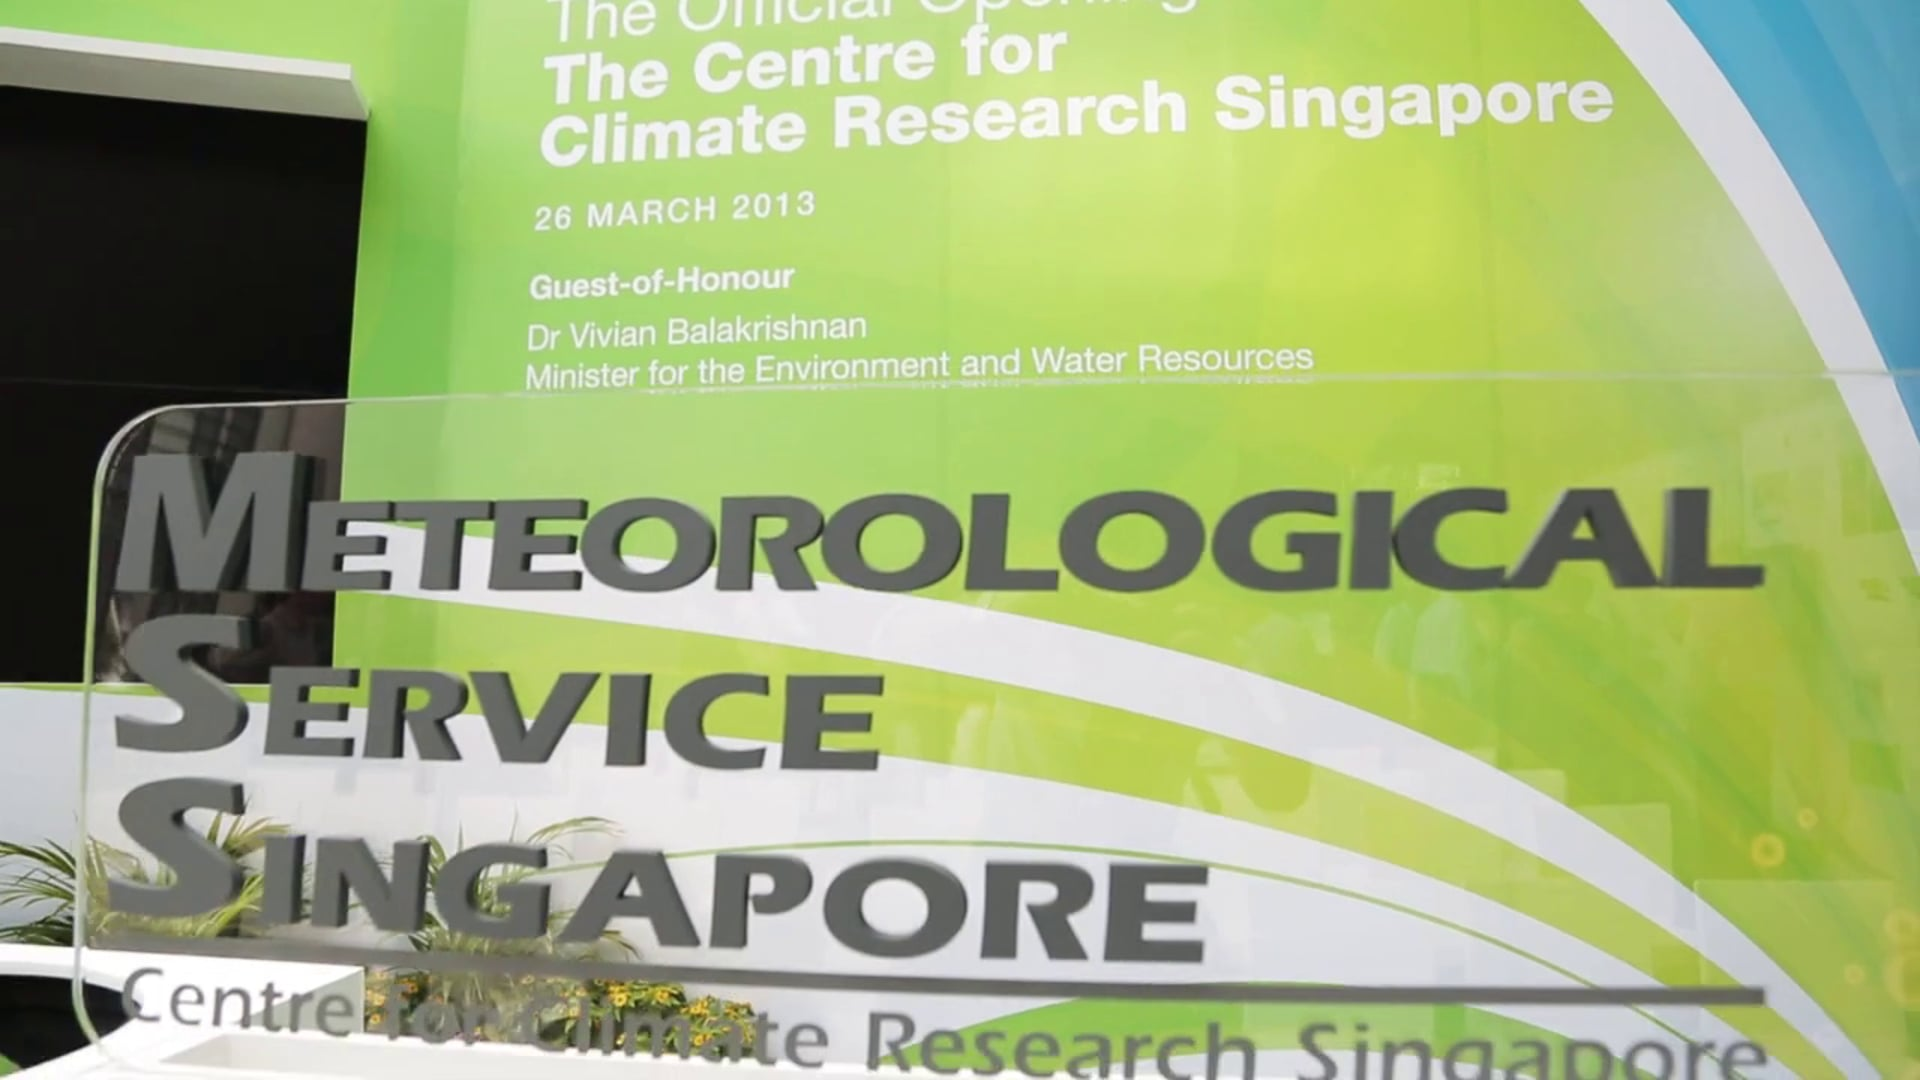 Official Opening of The Centre for Climate Research Singapore